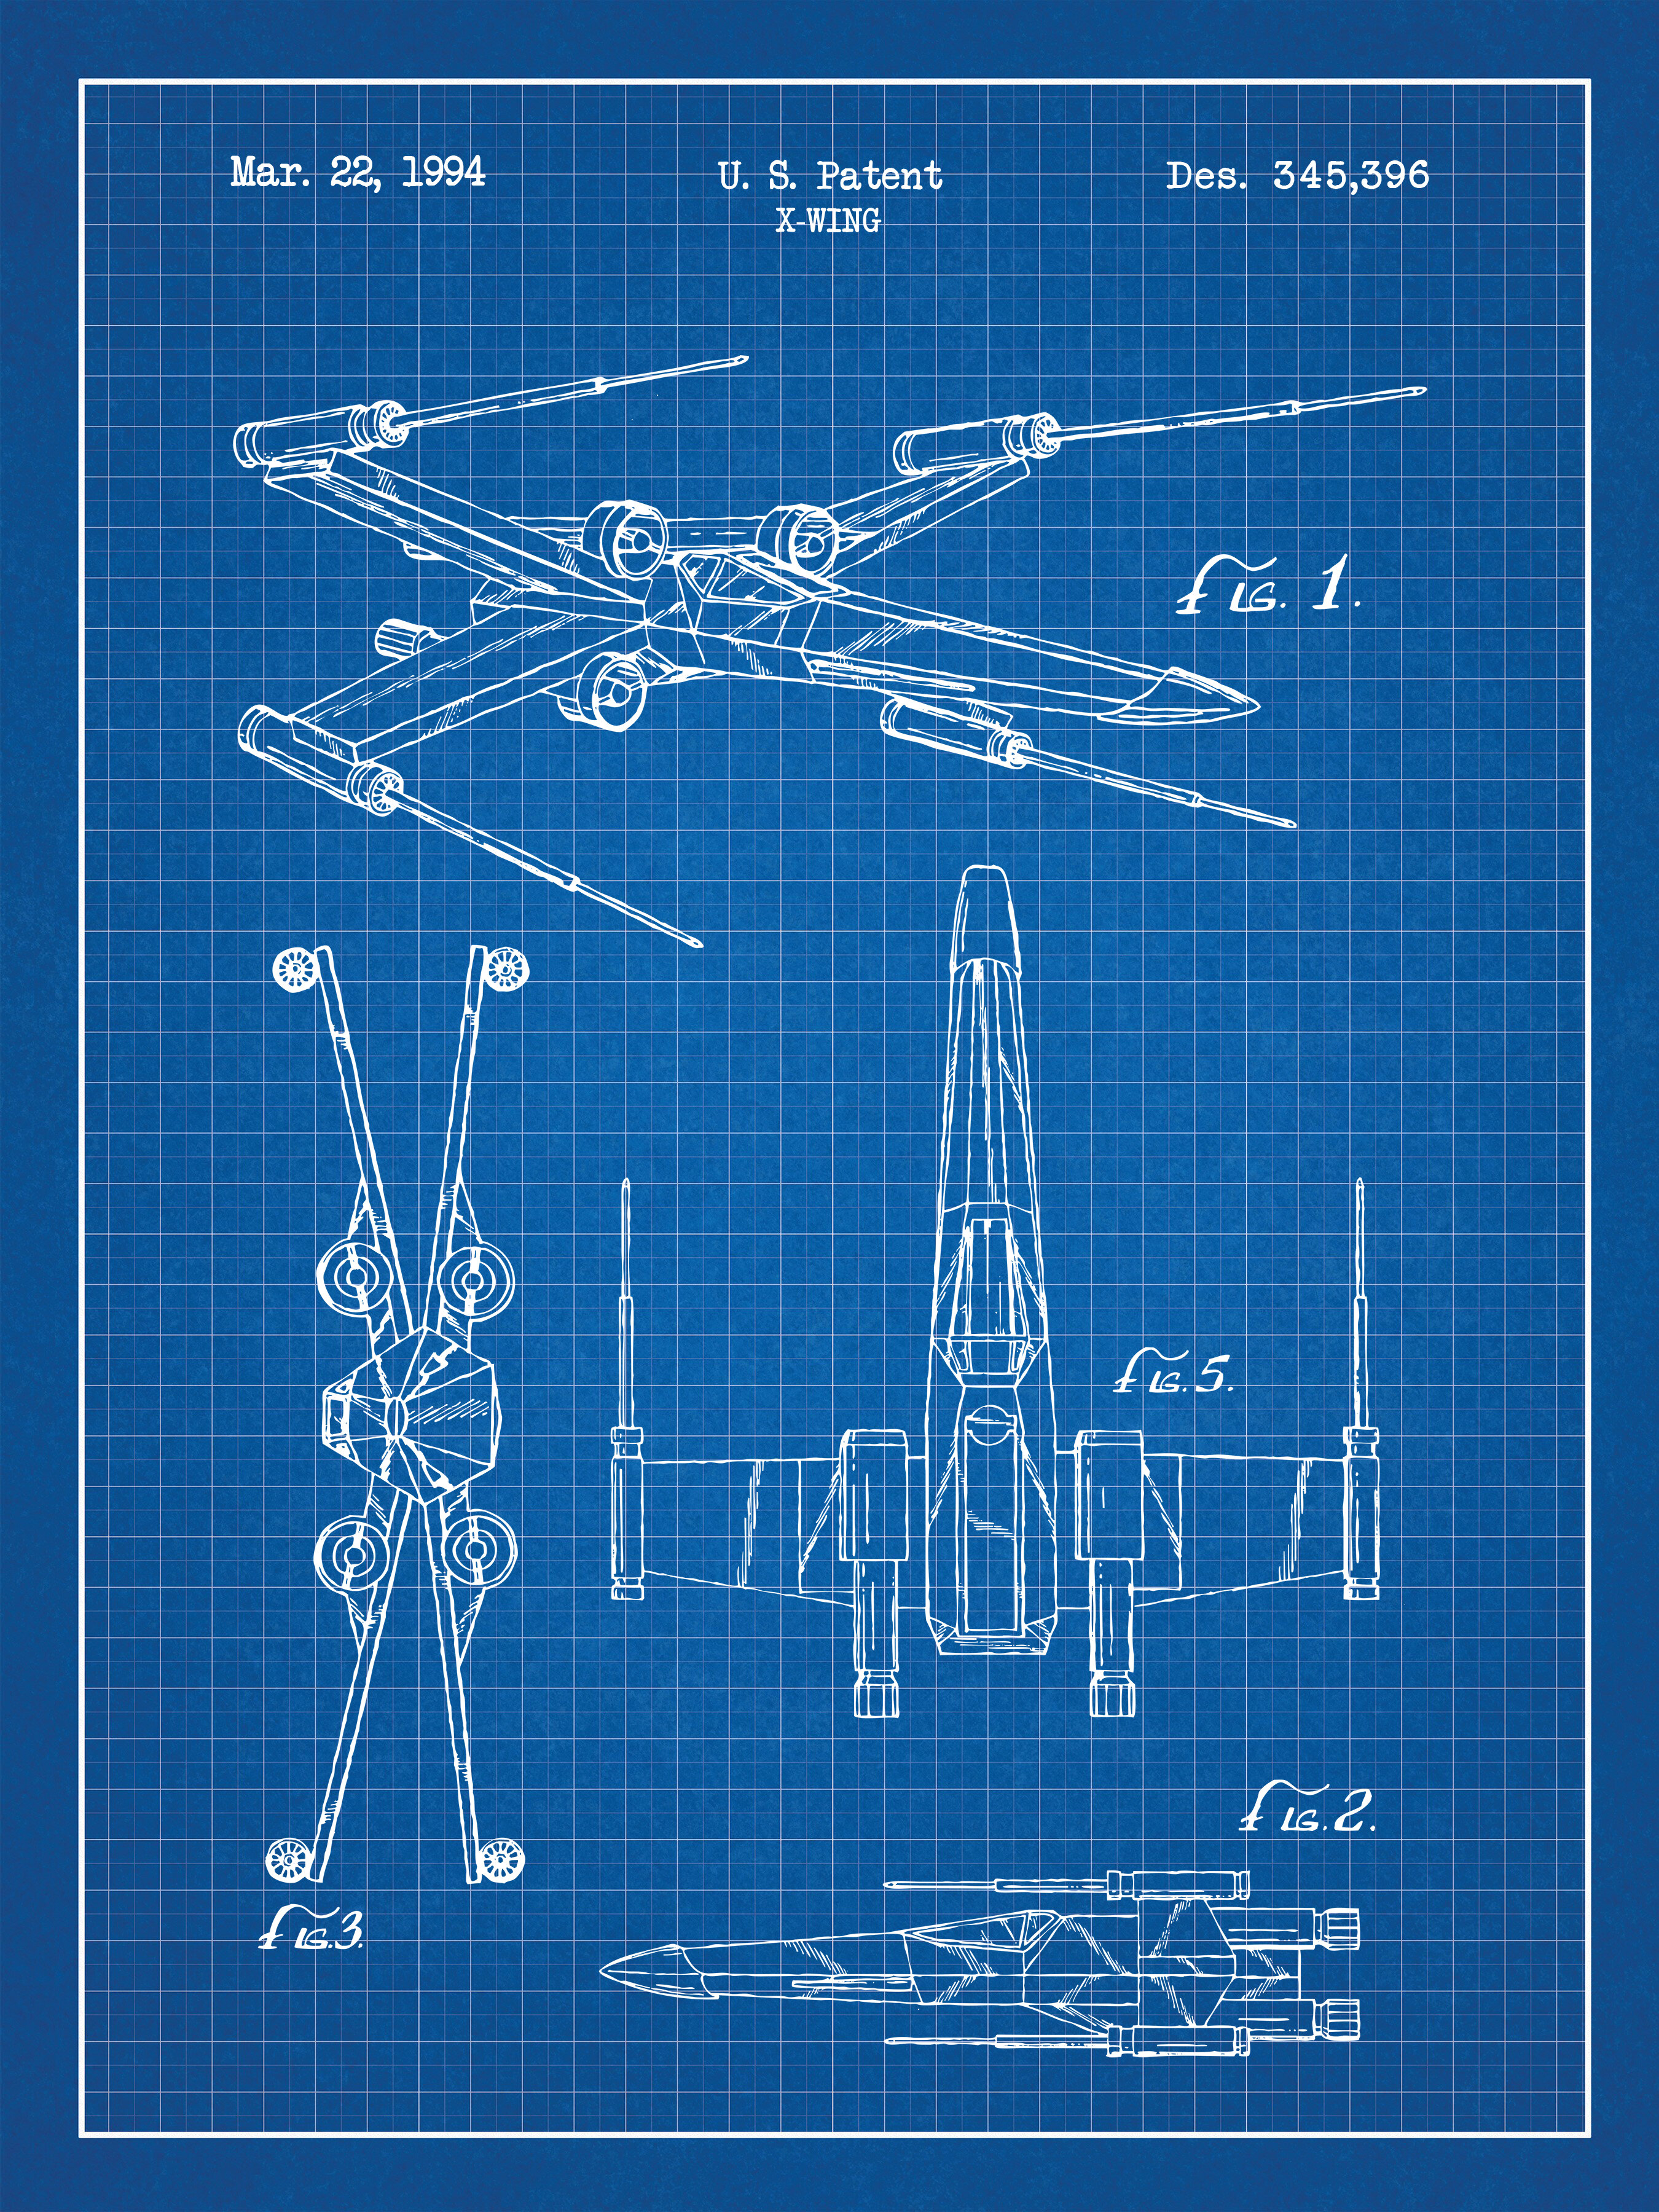 Williston forge star wars x wing 2 blueprint graphic art print williston forge star wars x wing 2 blueprint graphic art print wayfair malvernweather Choice Image